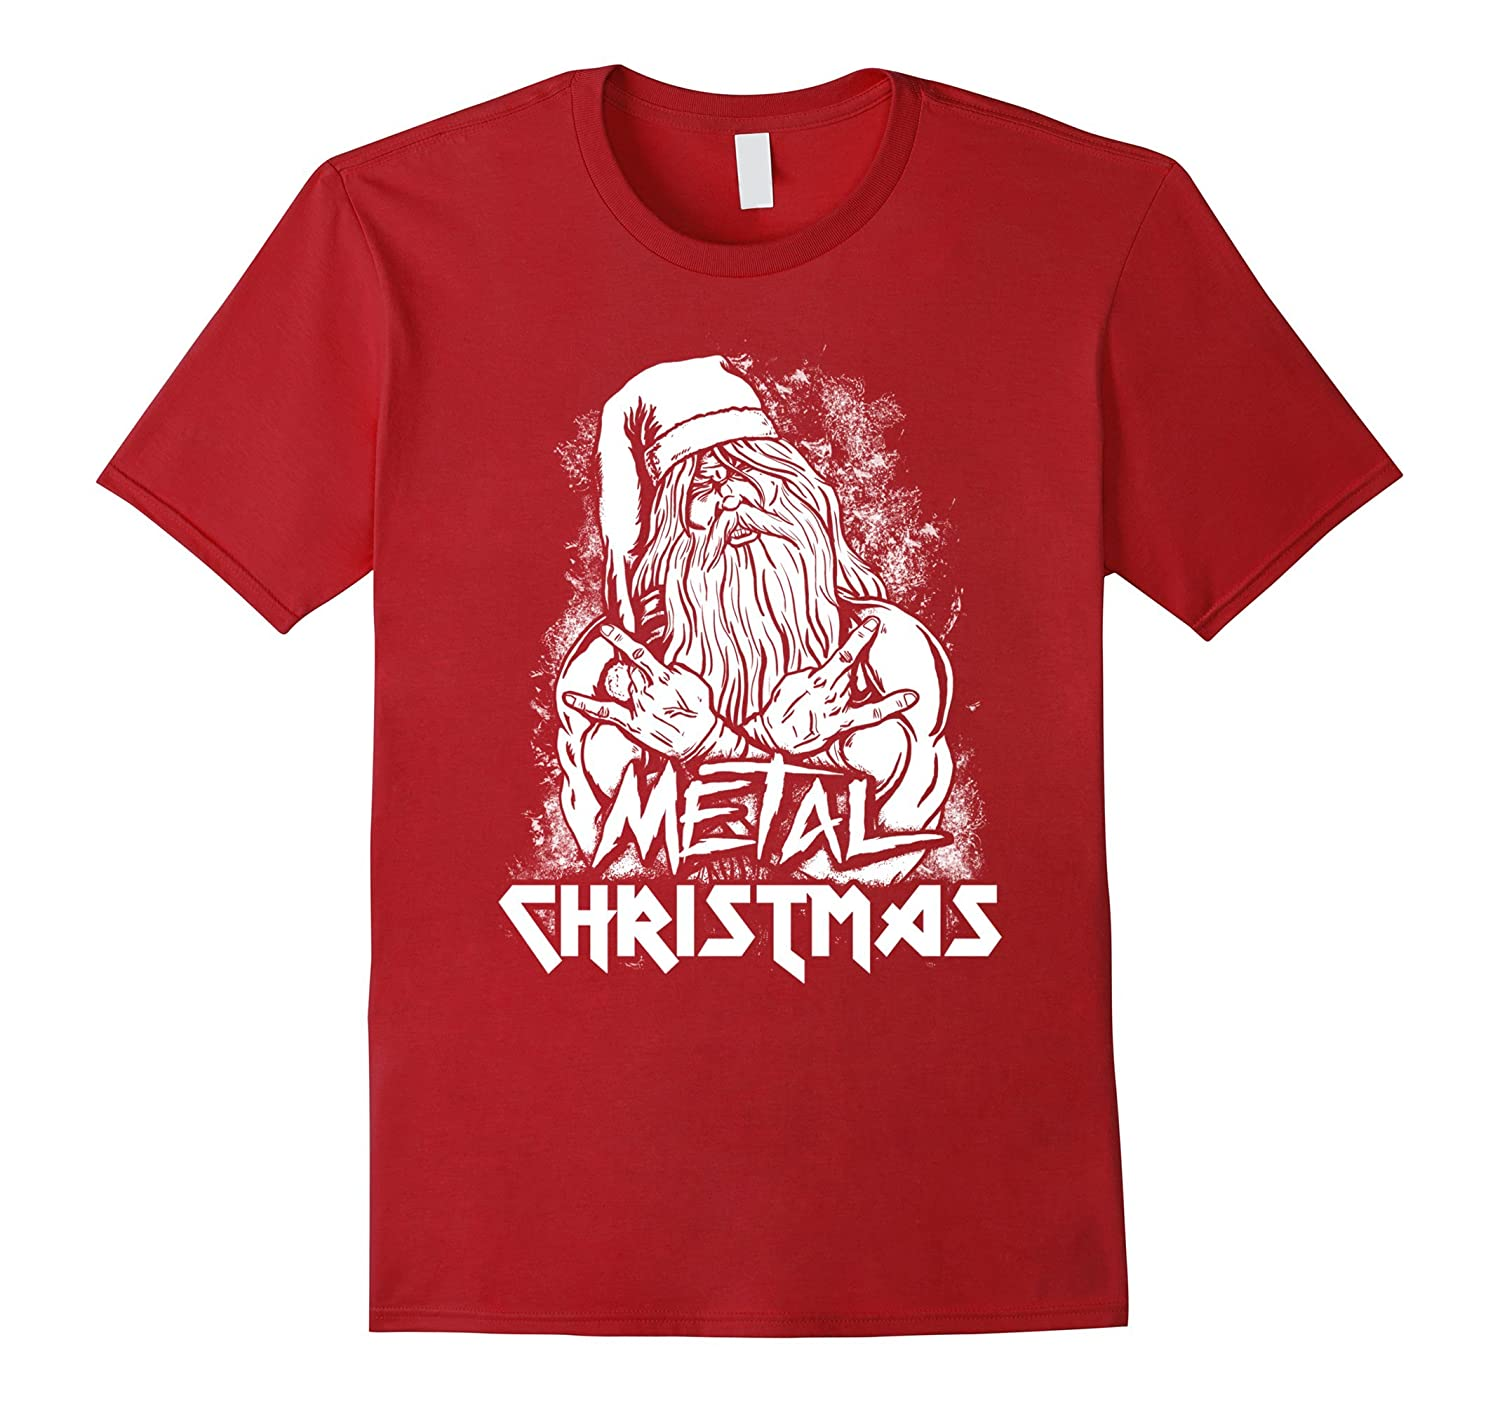 metal christmas shirt cool christmas gift ideas anz